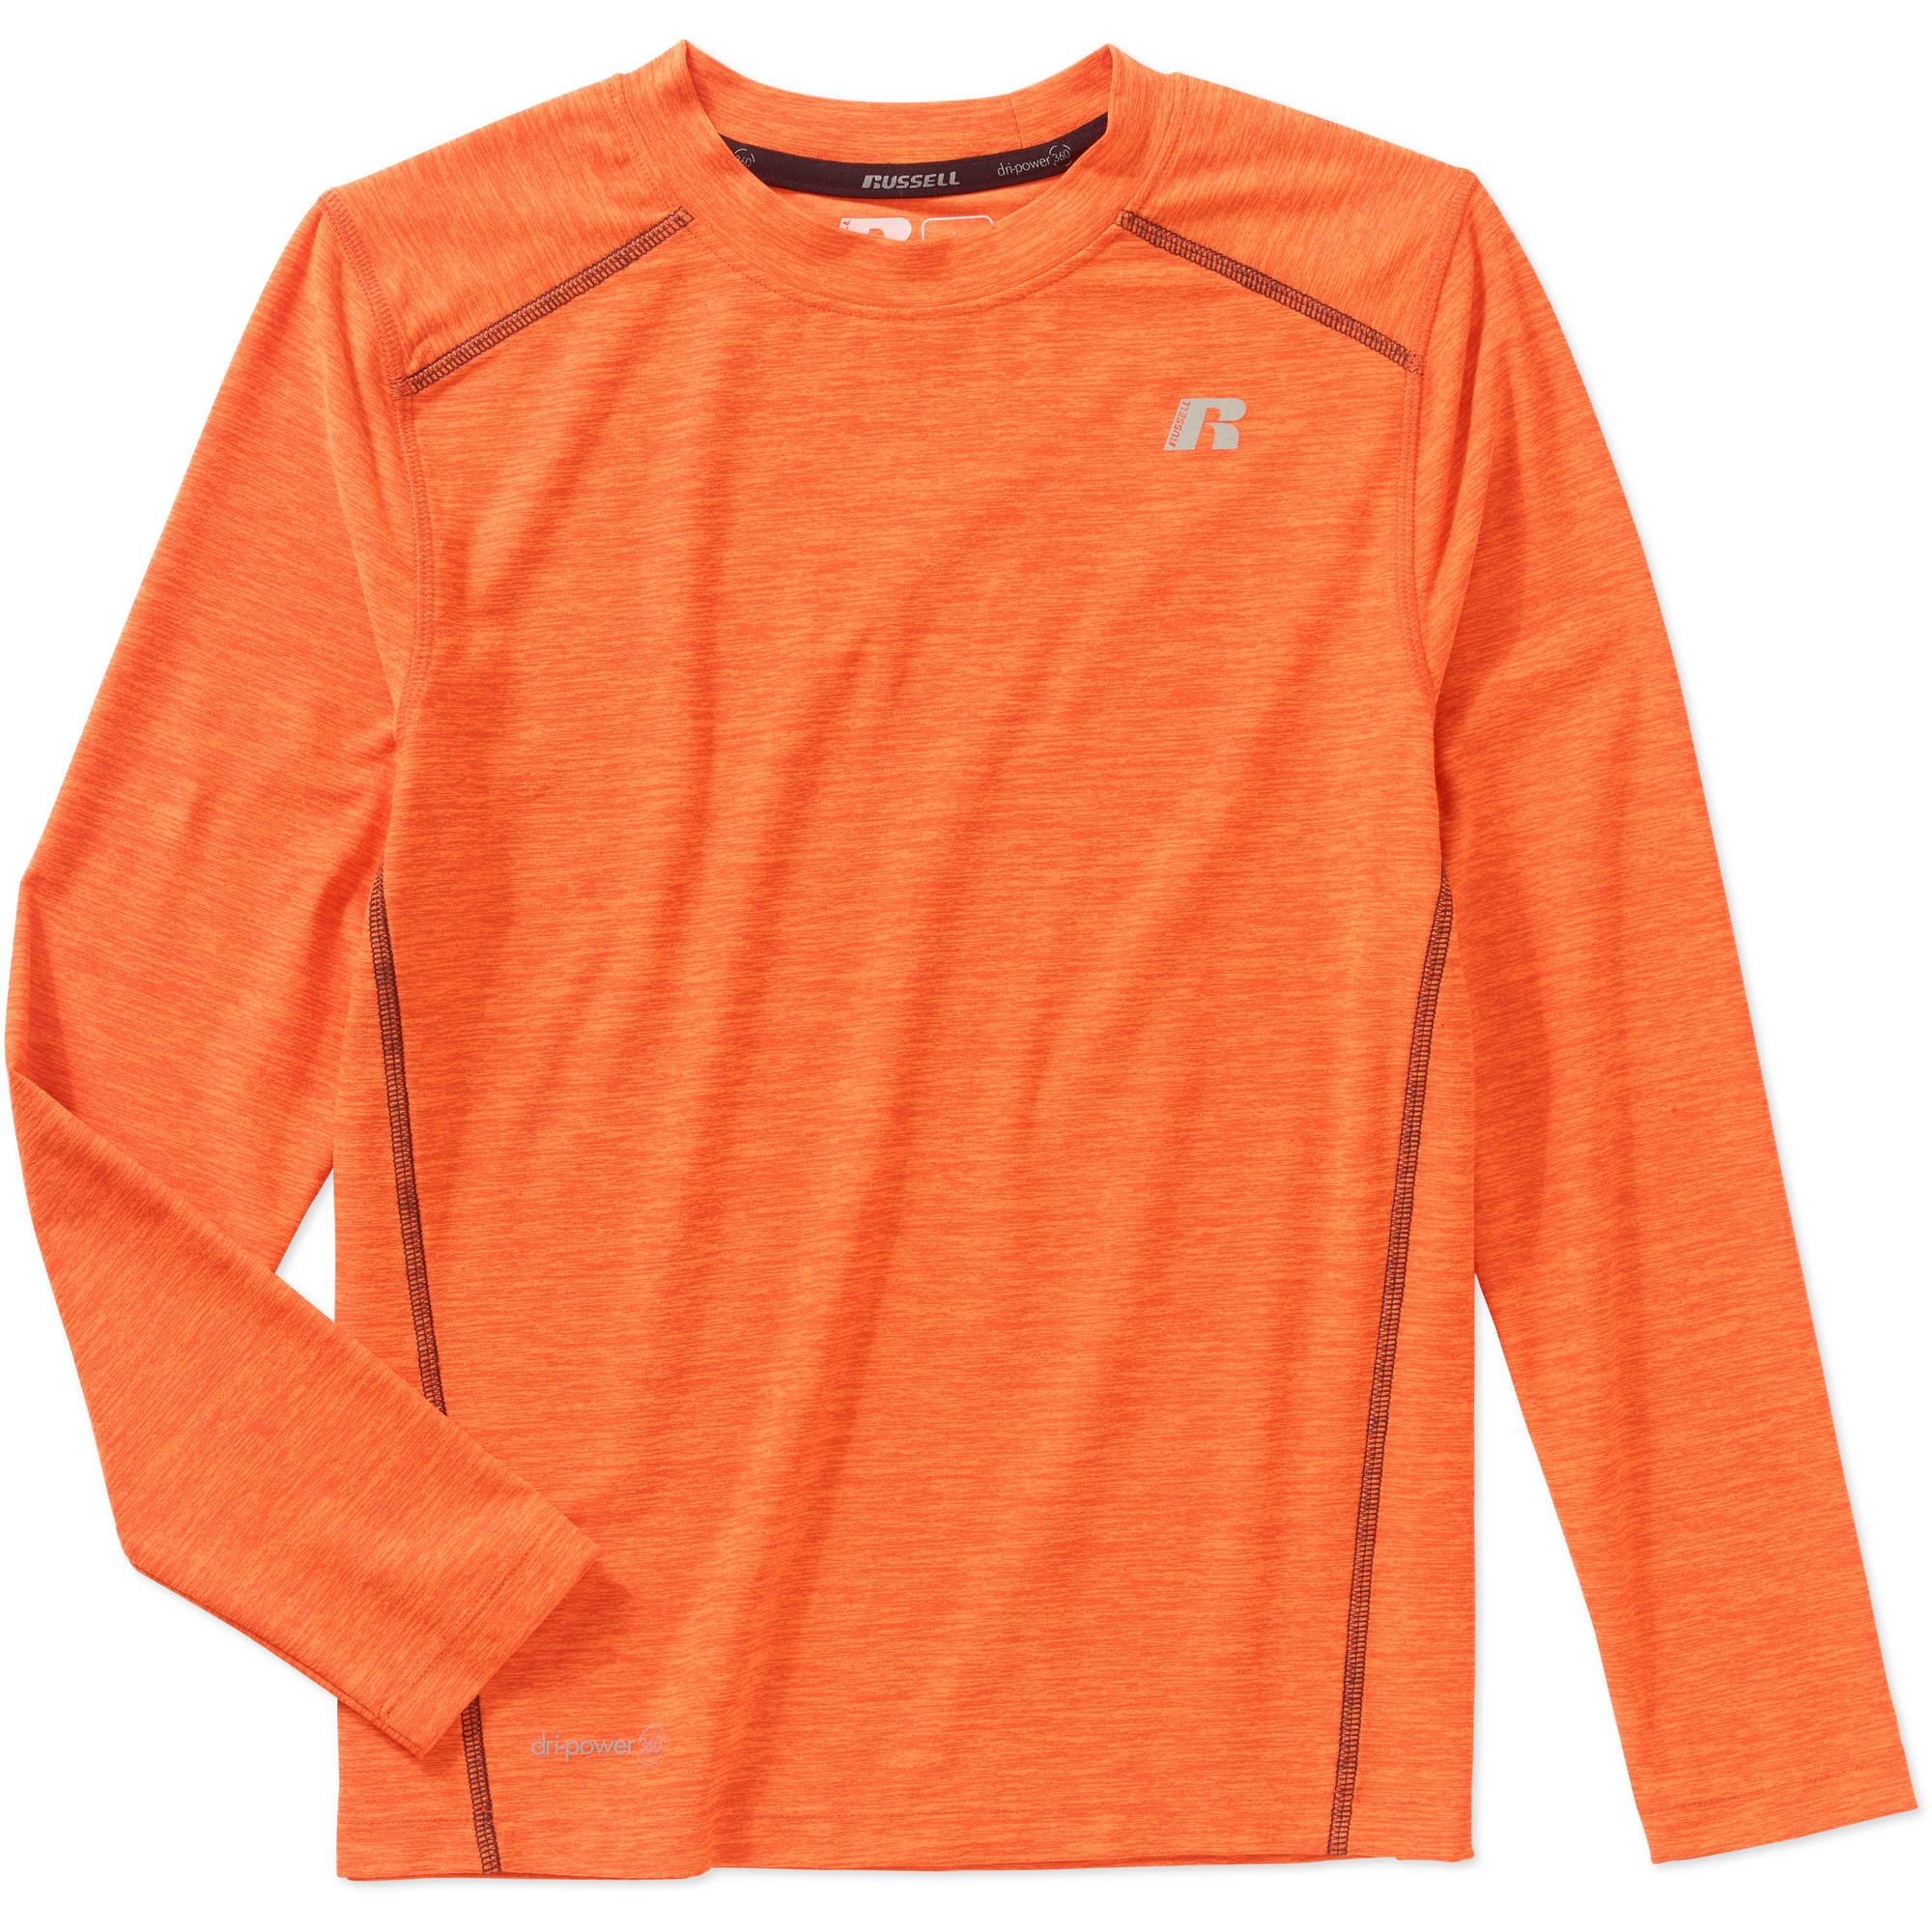 Russell Boys' Long Sleeve Sueded Tee